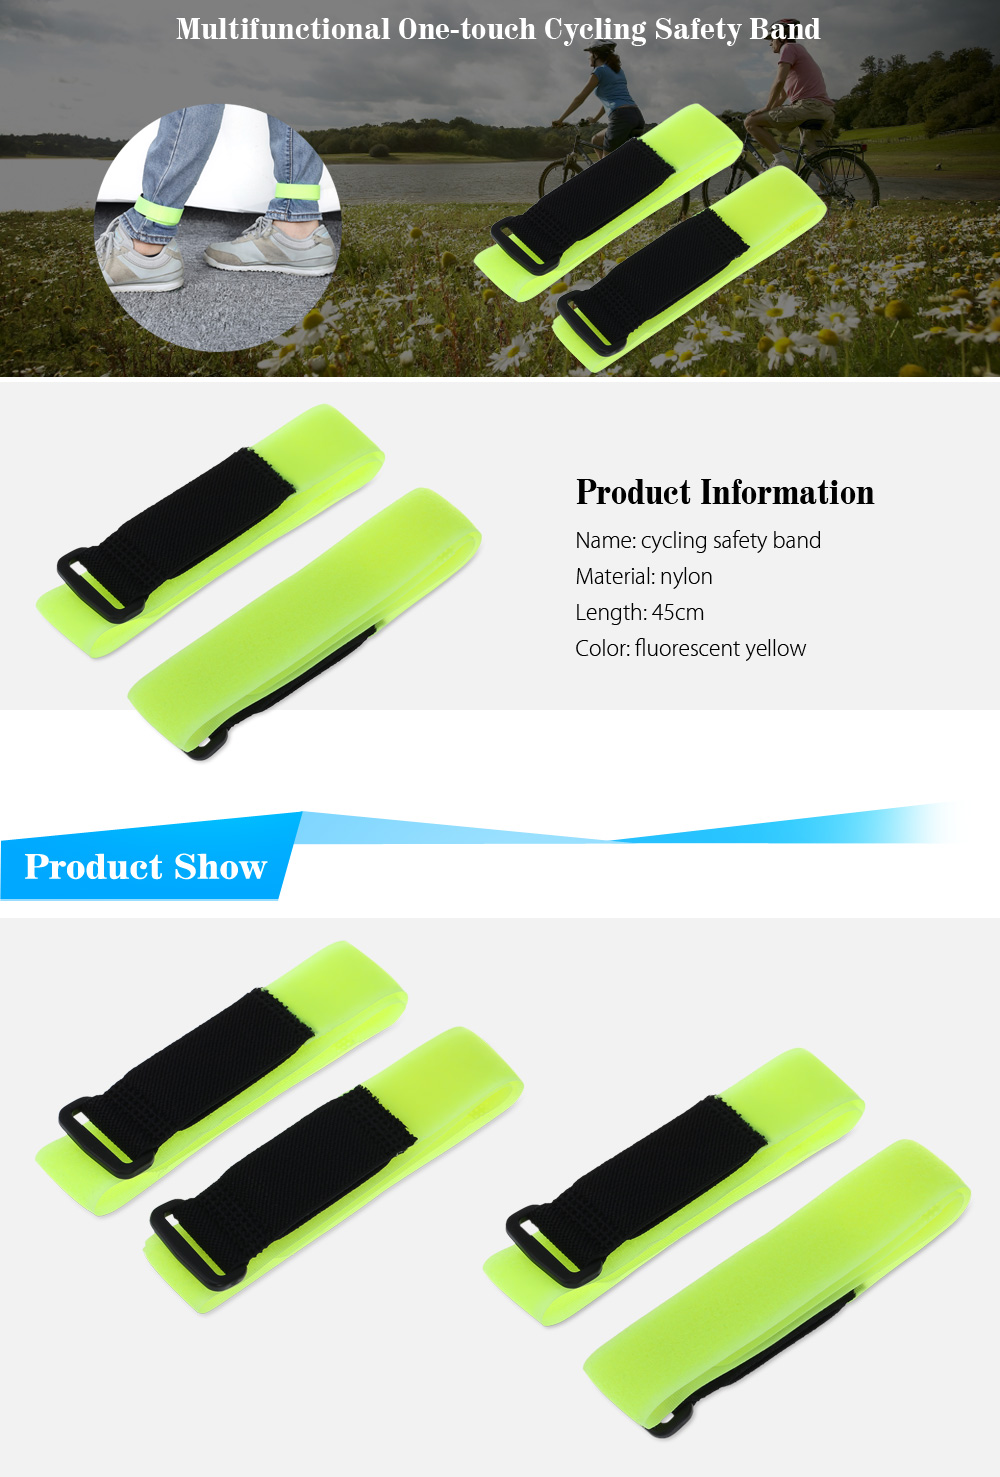 2pcs Multifunctional One-touch Cycling Safety Bands Leg Restraint Nylon Belts